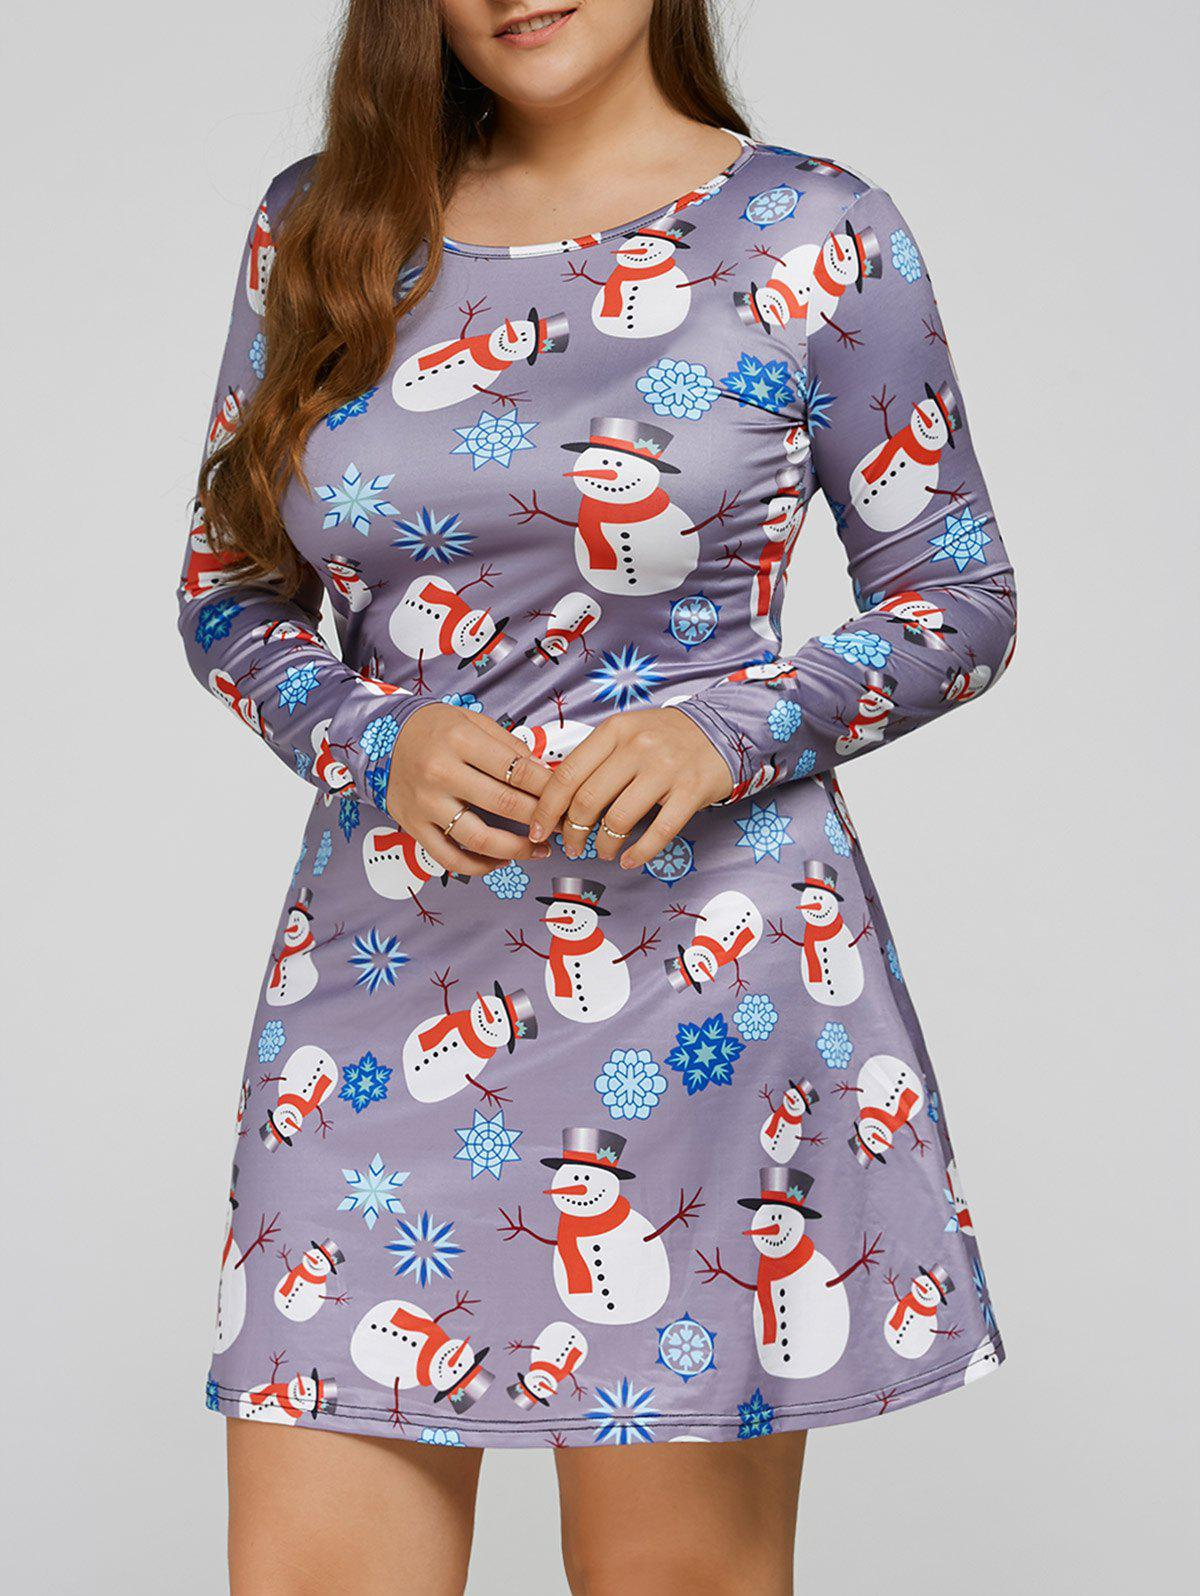 Long Sleeve Snowman Print Plus Size Christmas Skater DressWOMEN<br><br>Size: XL; Color: BLUE GRAY; Style: Casual; Material: Polyester; Silhouette: A-Line; Dresses Length: Mini; Neckline: Scoop Neck; Sleeve Length: Long Sleeves; Pattern Type: Character; With Belt: No; Season: Fall,Spring; Weight: 0.250kg; Package Contents: 1 x Dress;